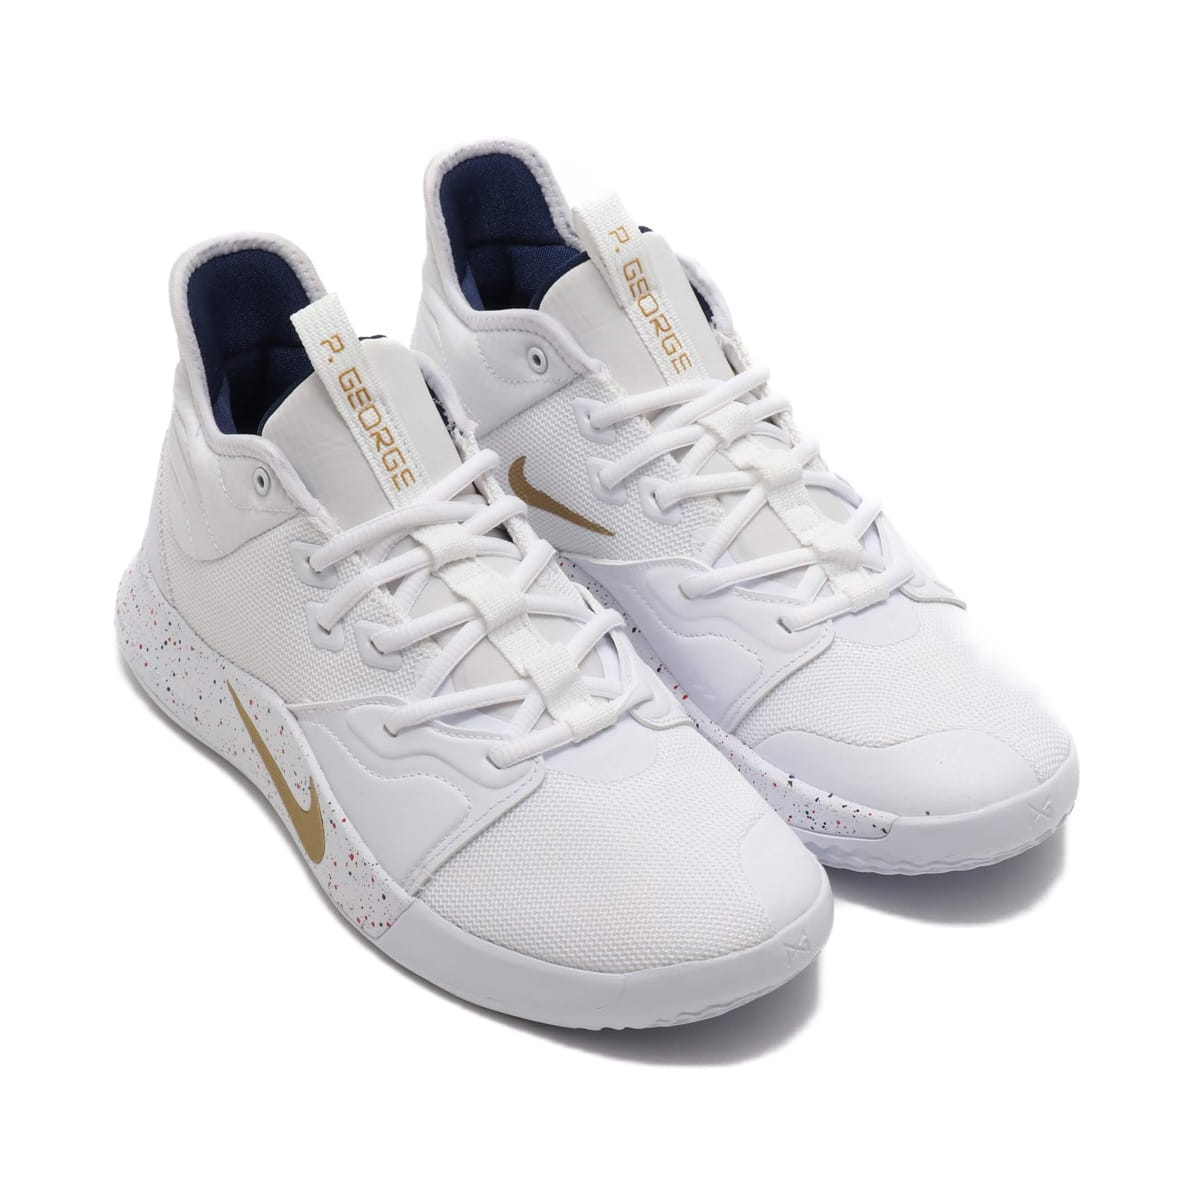 NIKE PG 3 EP WHT/MTLLC GLD-MDNGHT NVY-UNVRS 19SU-S_photo_large